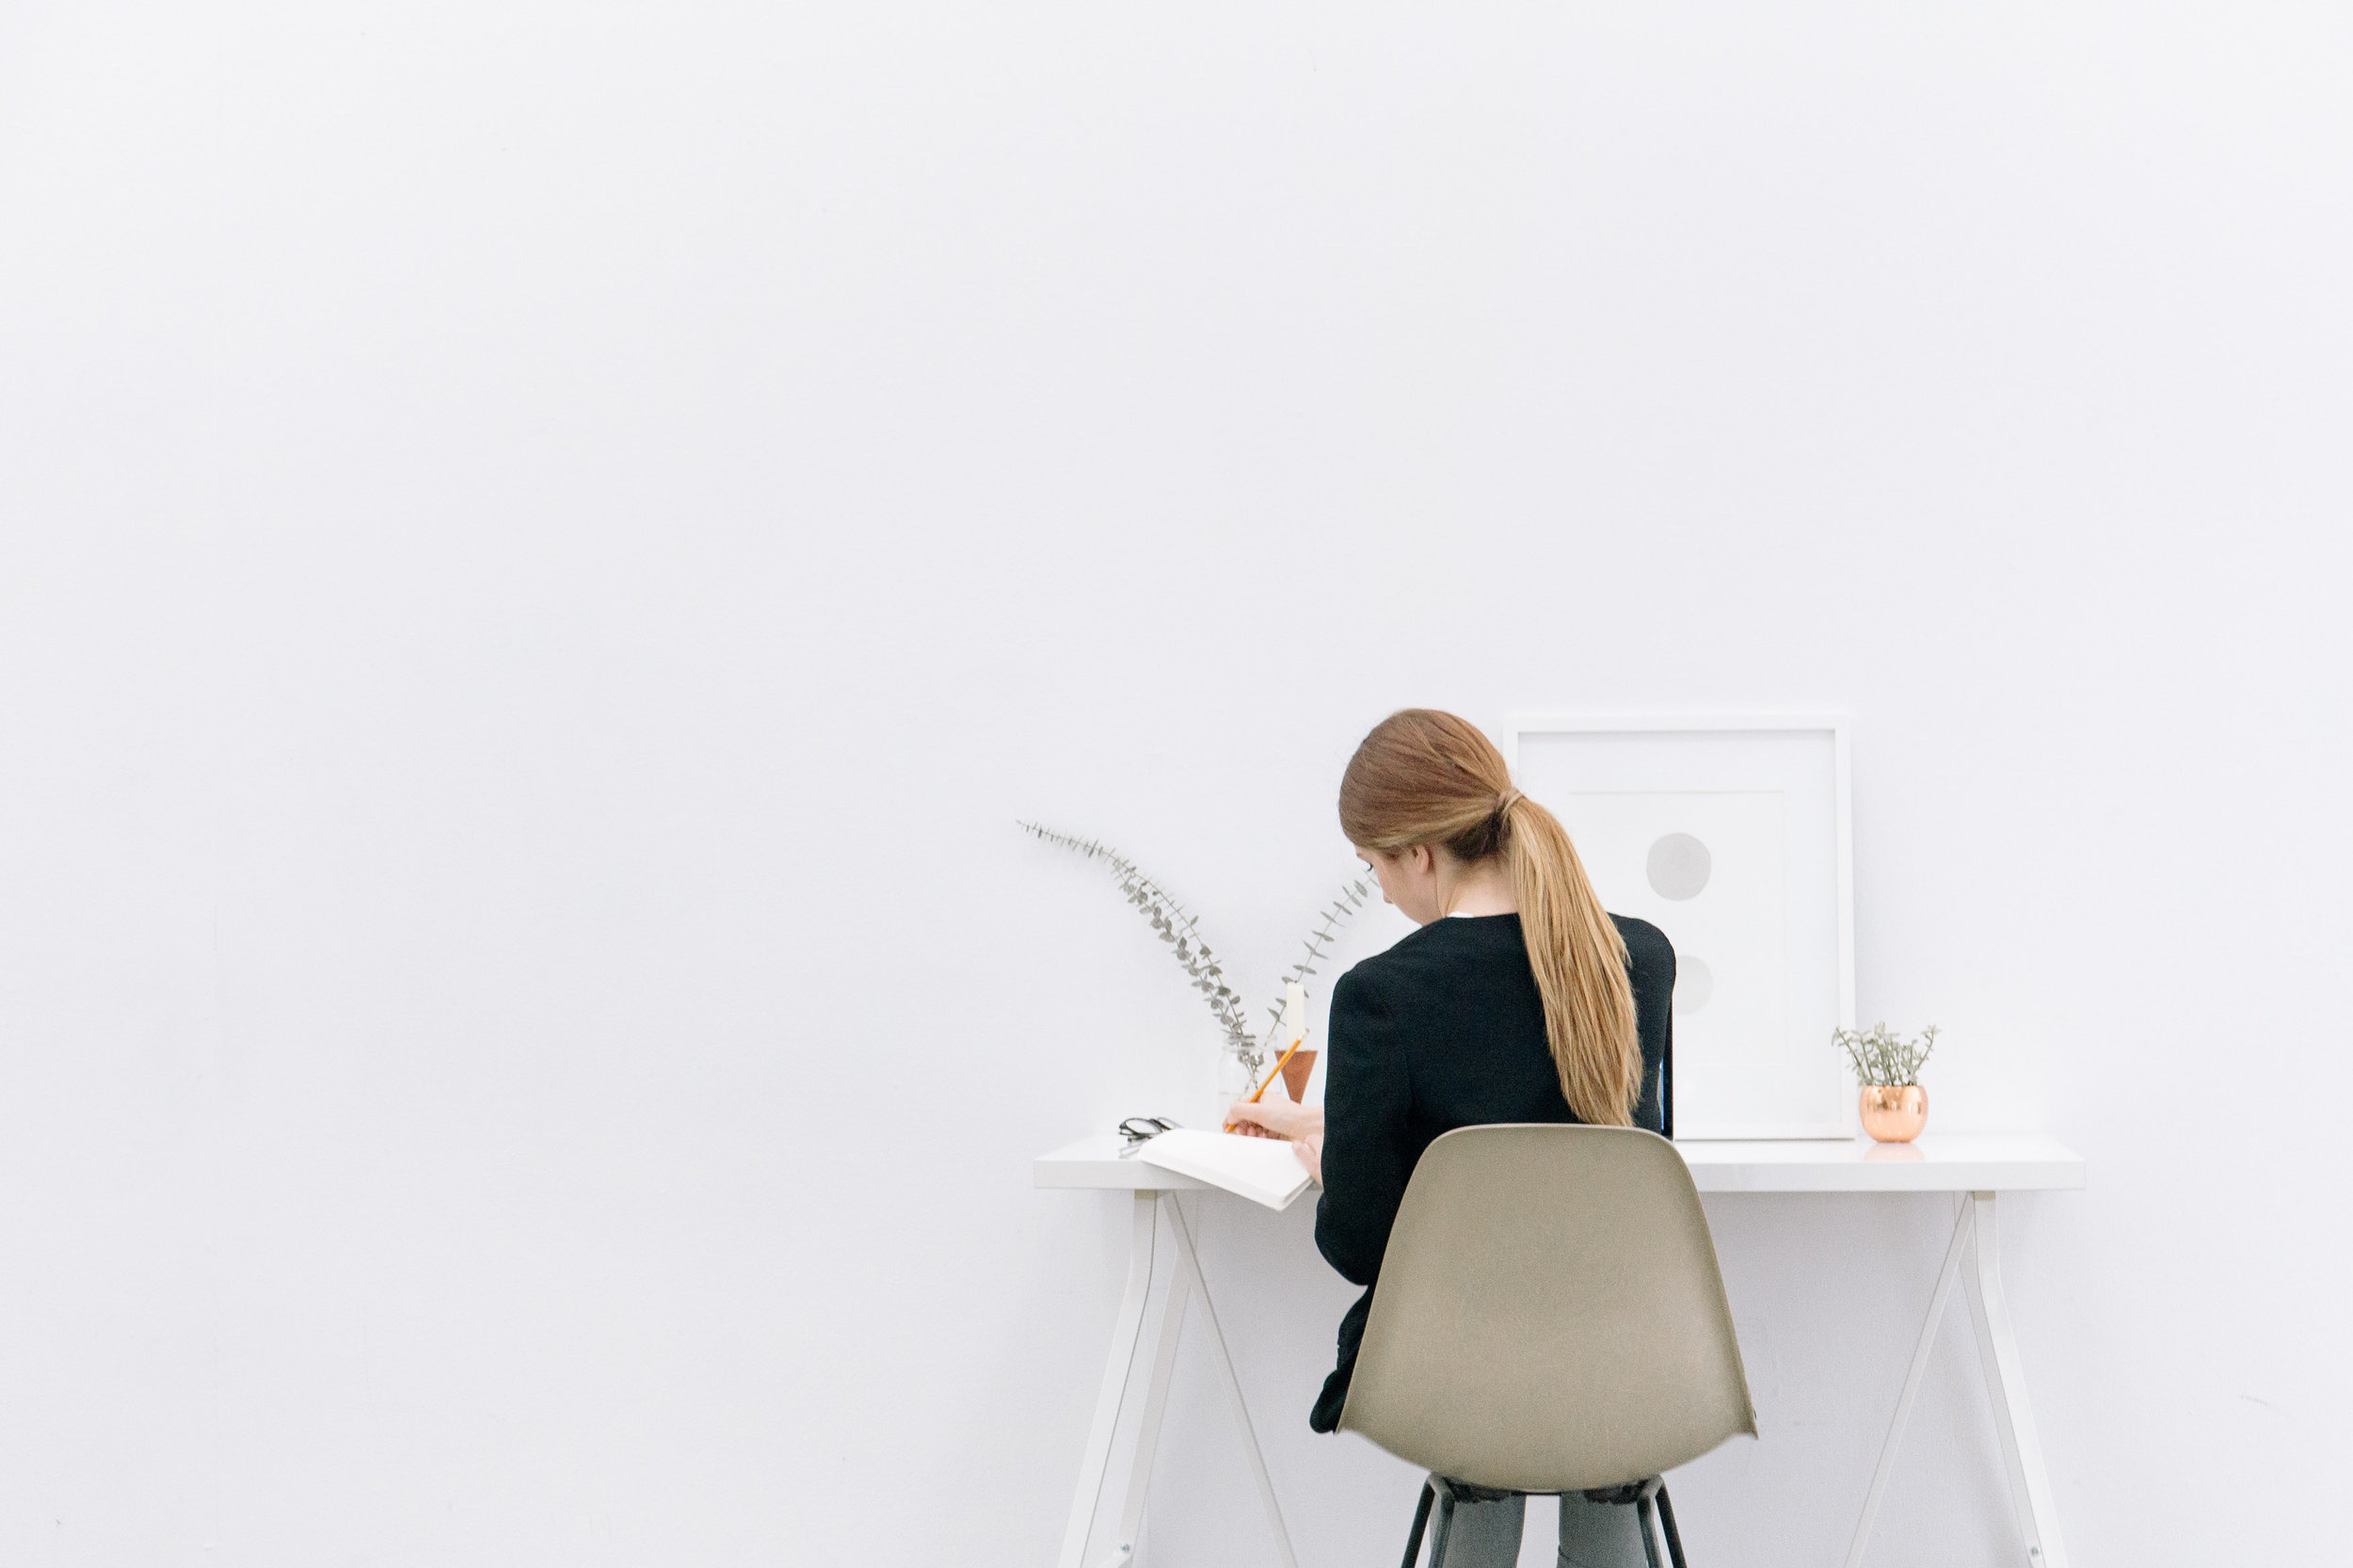 How To Stay Motivated With The Architecture Job Search